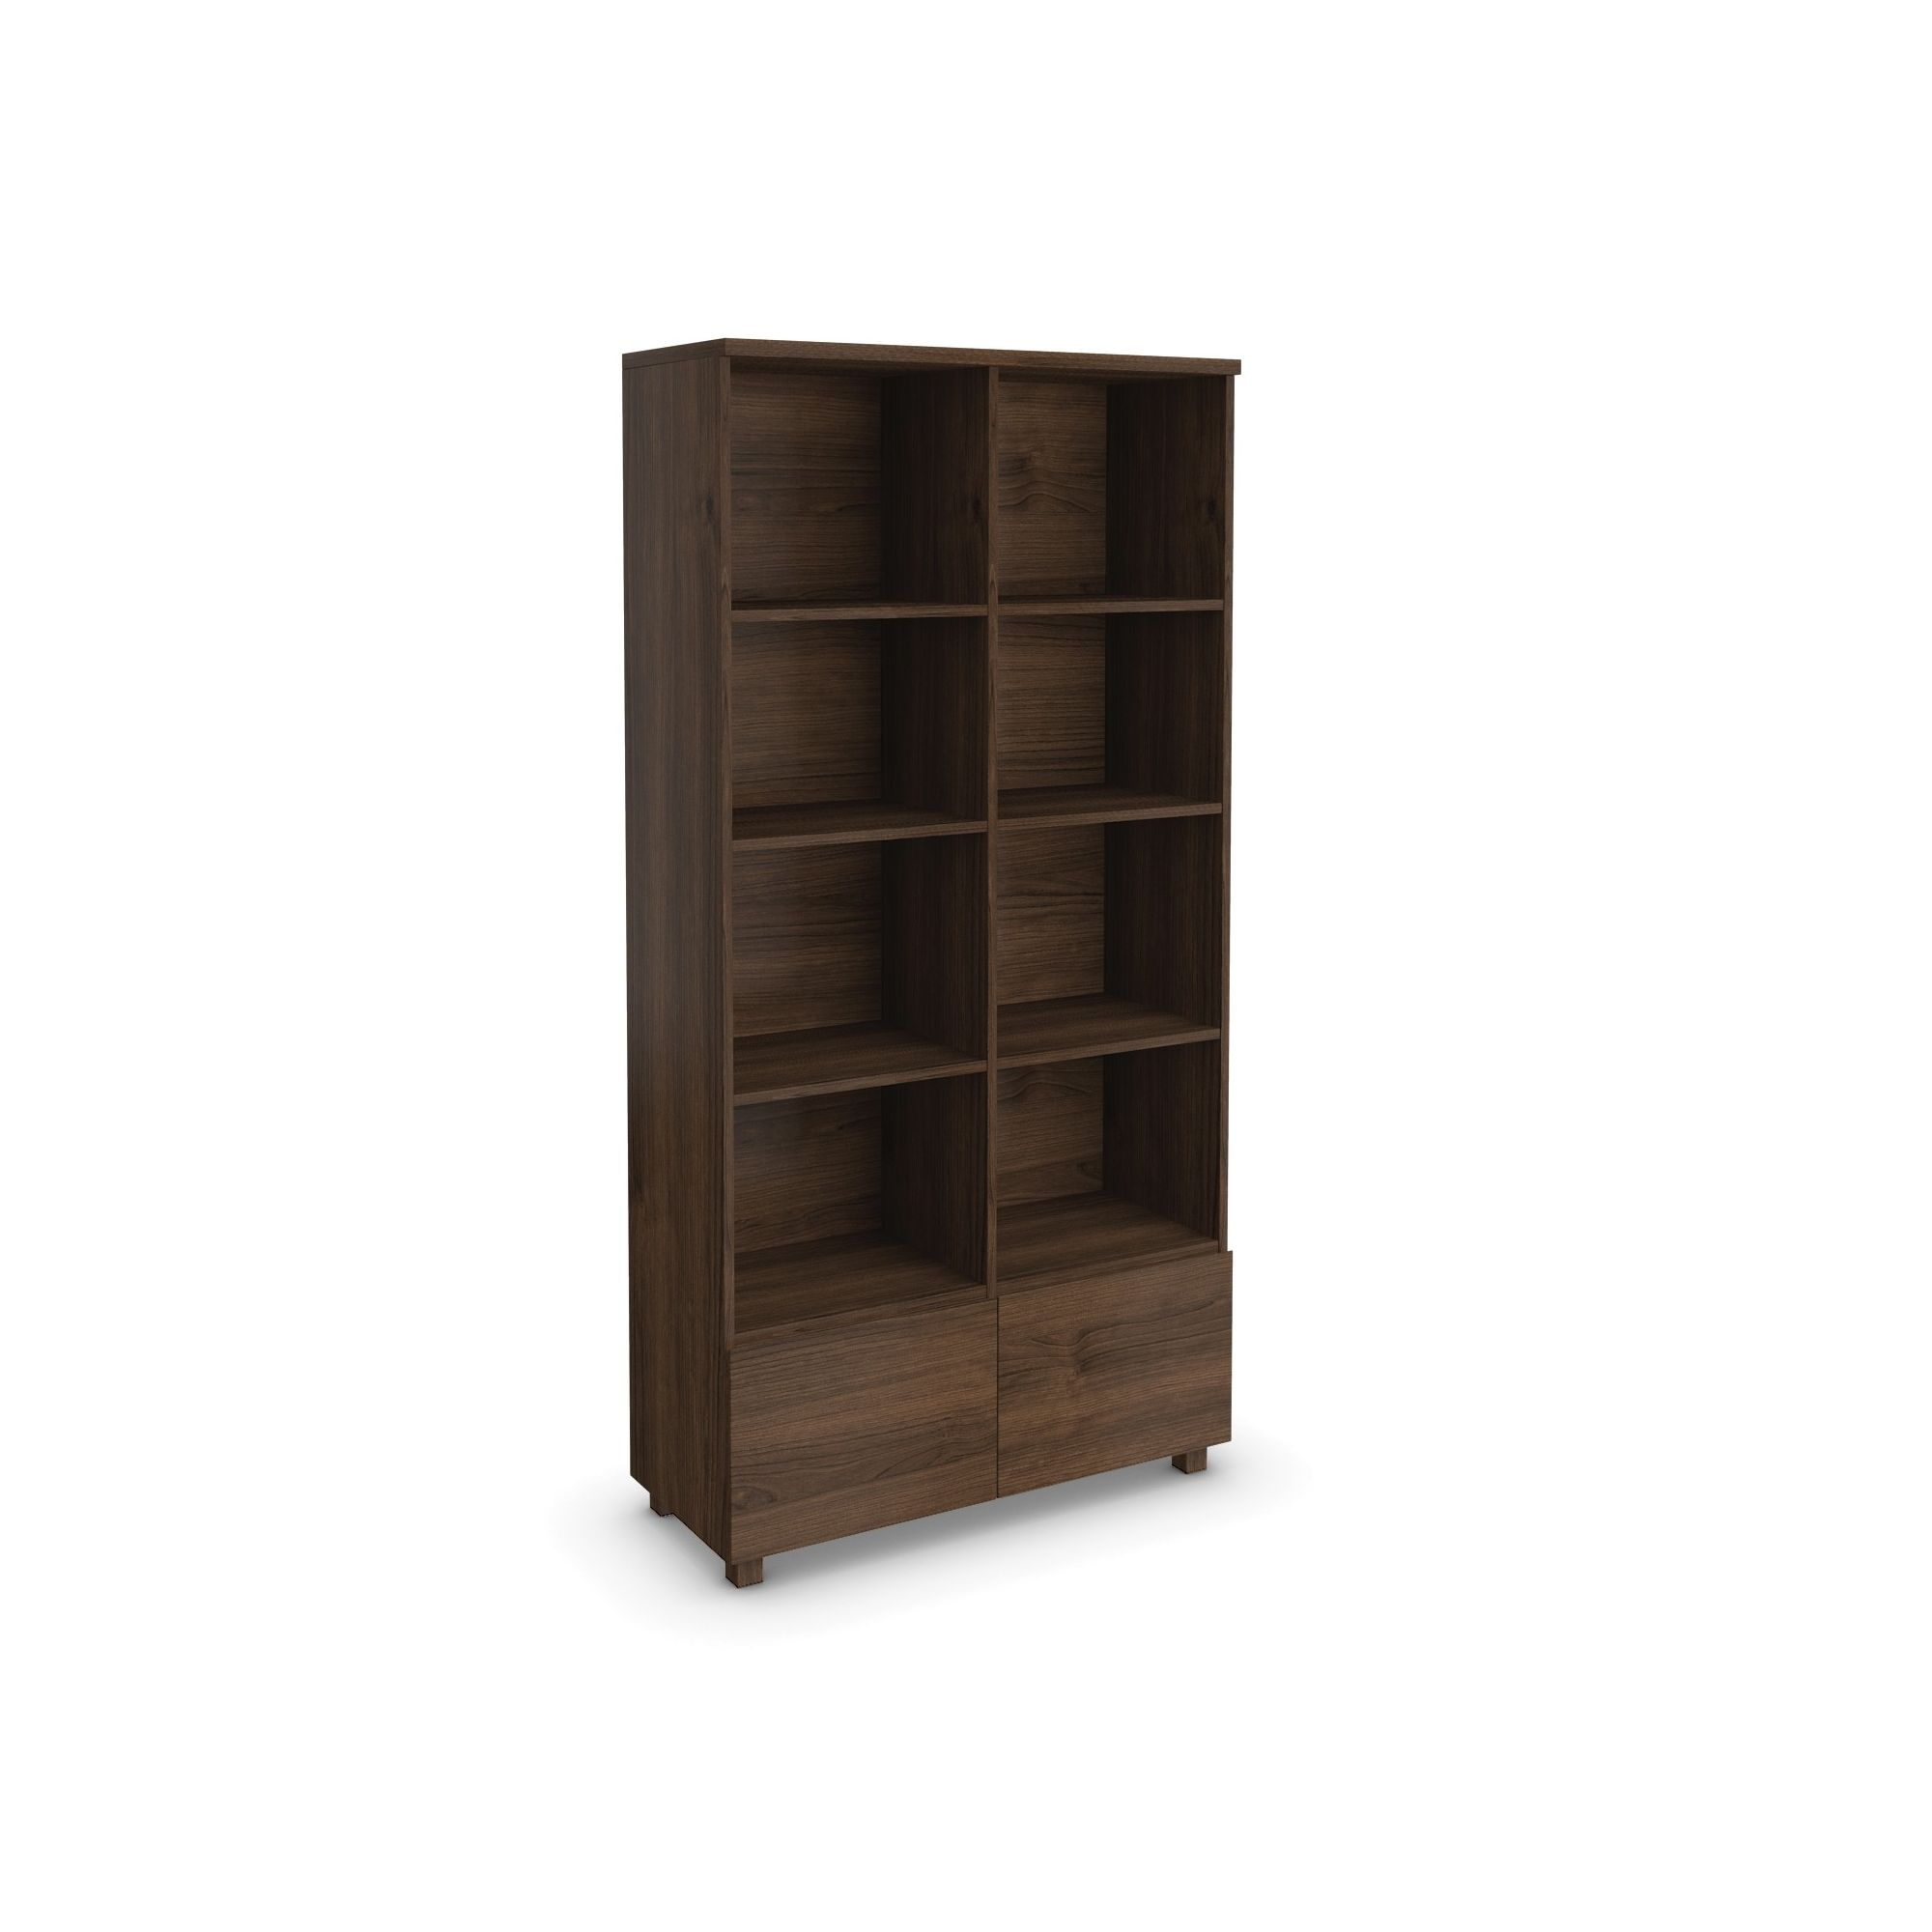 Urbane Designs Hadlee Contemporary Walnut Livingroom 2 Door Double Bookcase at Tesco Direct